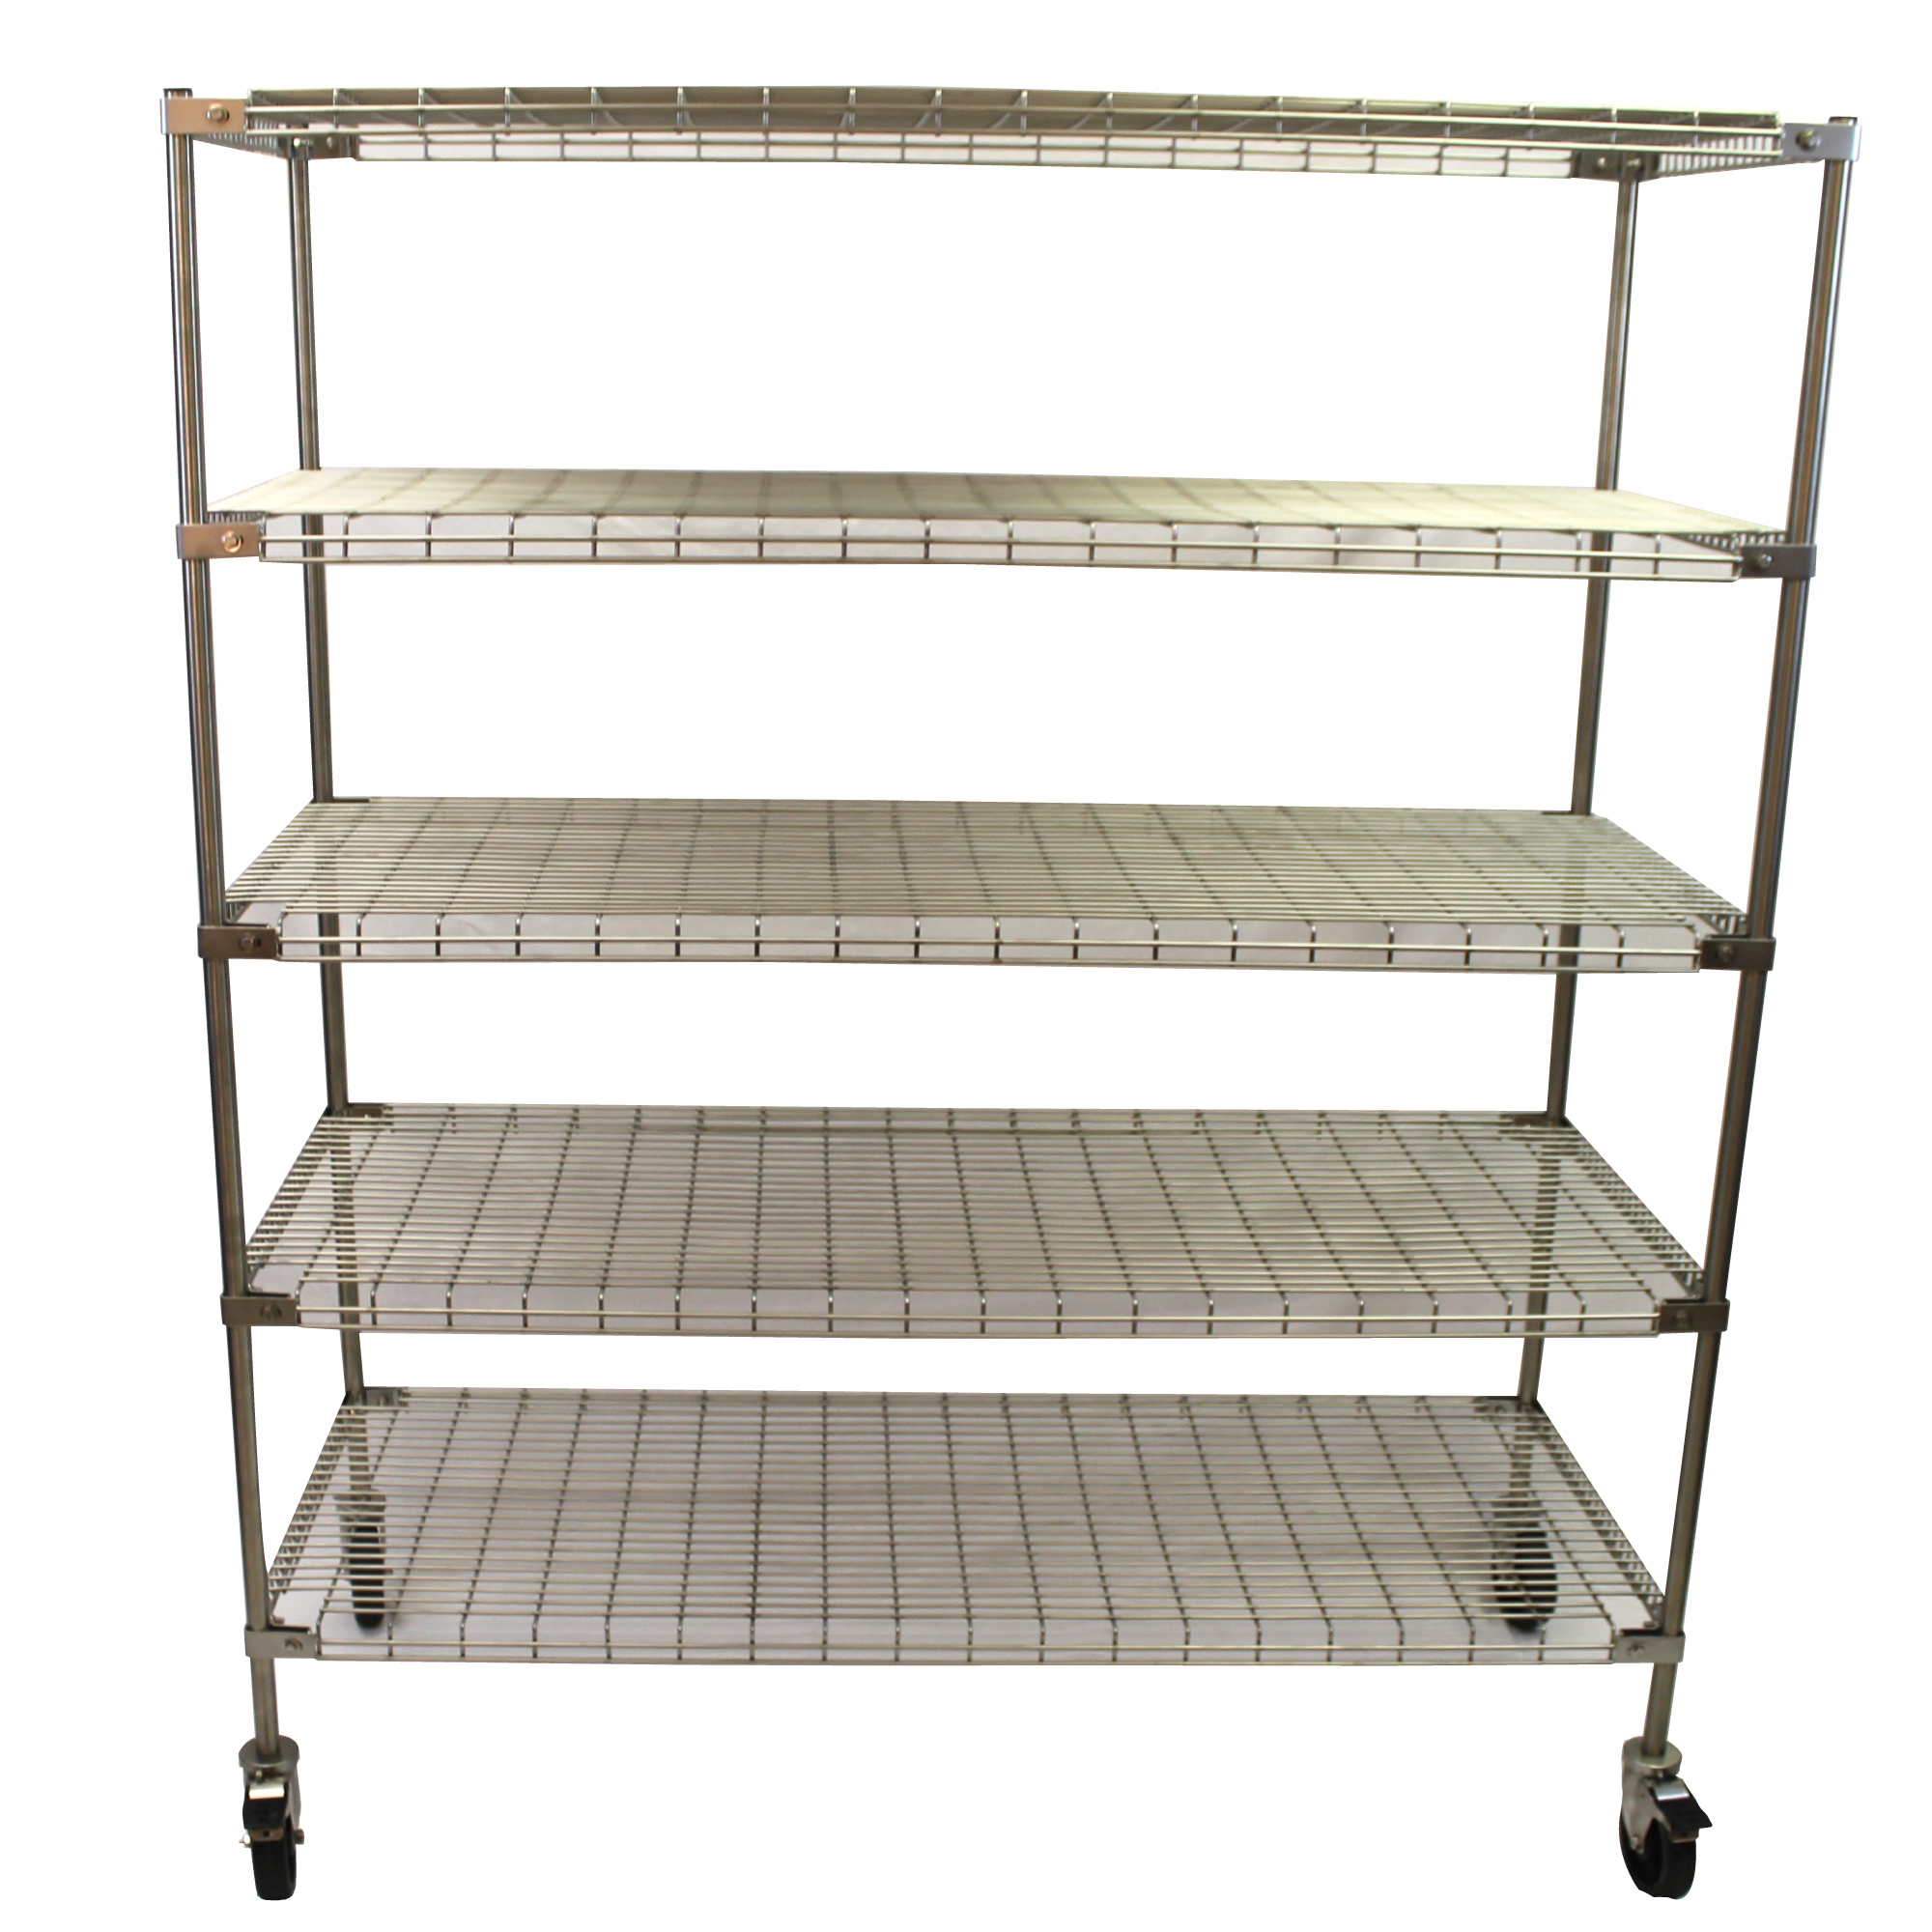 suspended products rat system animals rack shelf